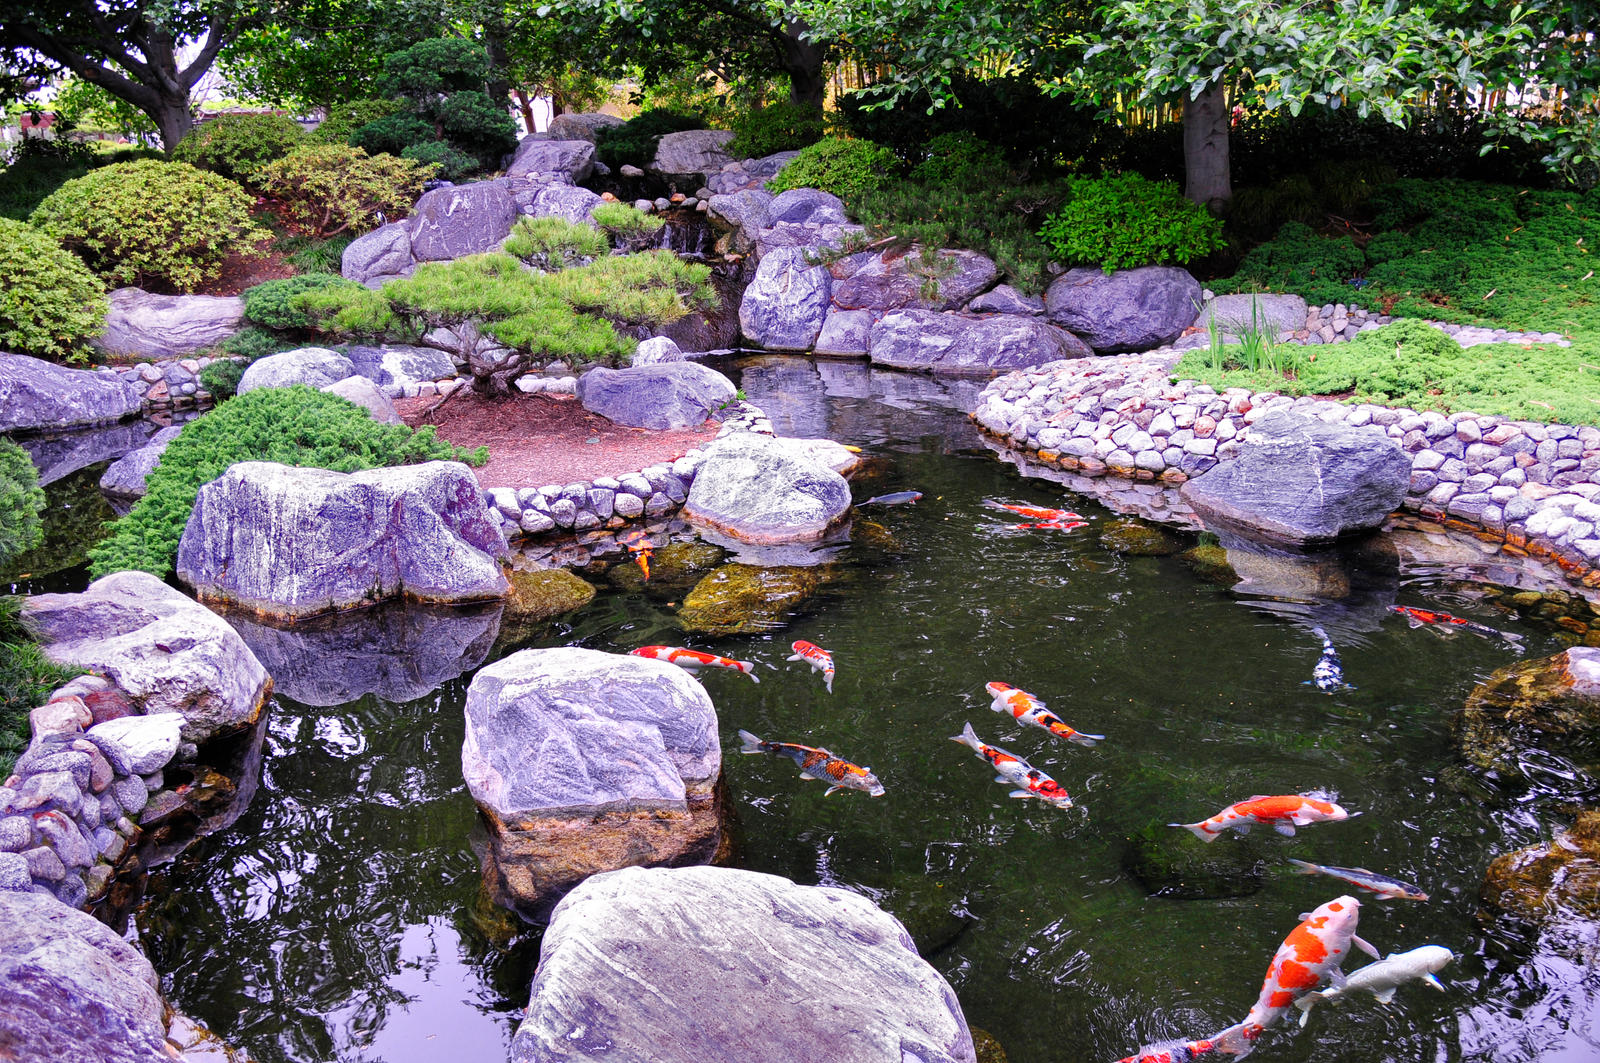 Japanese garden tranquil koi by andyserrano on deviantart for Japanese koi pond garden